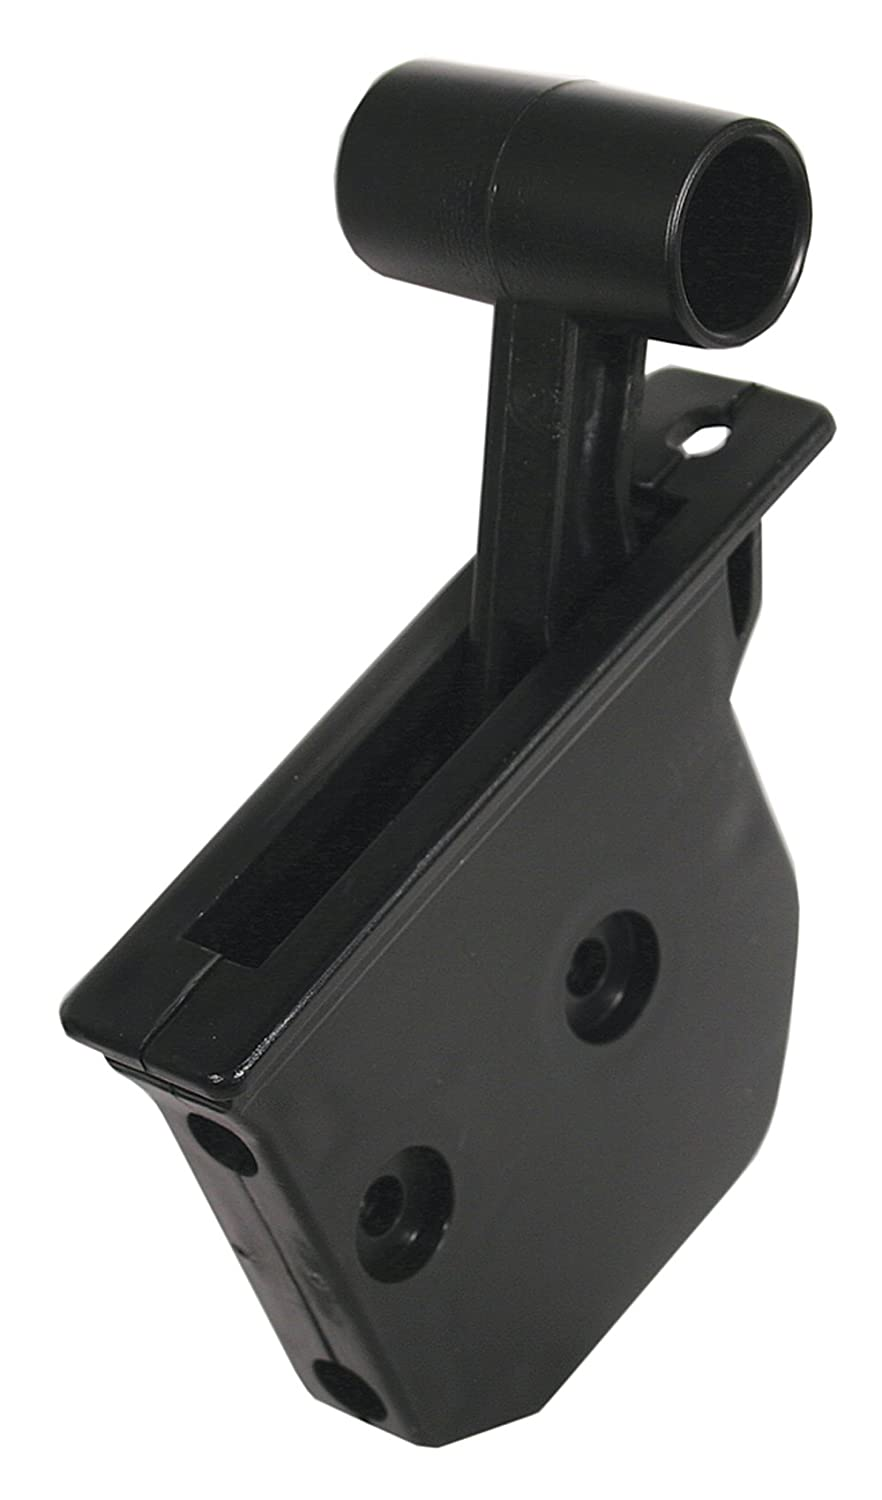 "Stens 295-406 Throttle Control Head, Replaces MTD: 831-0796A, Fits MTD: 132-657-F062 and 139-652-352 Riders with 36"", 38"" and 46"" Decks"